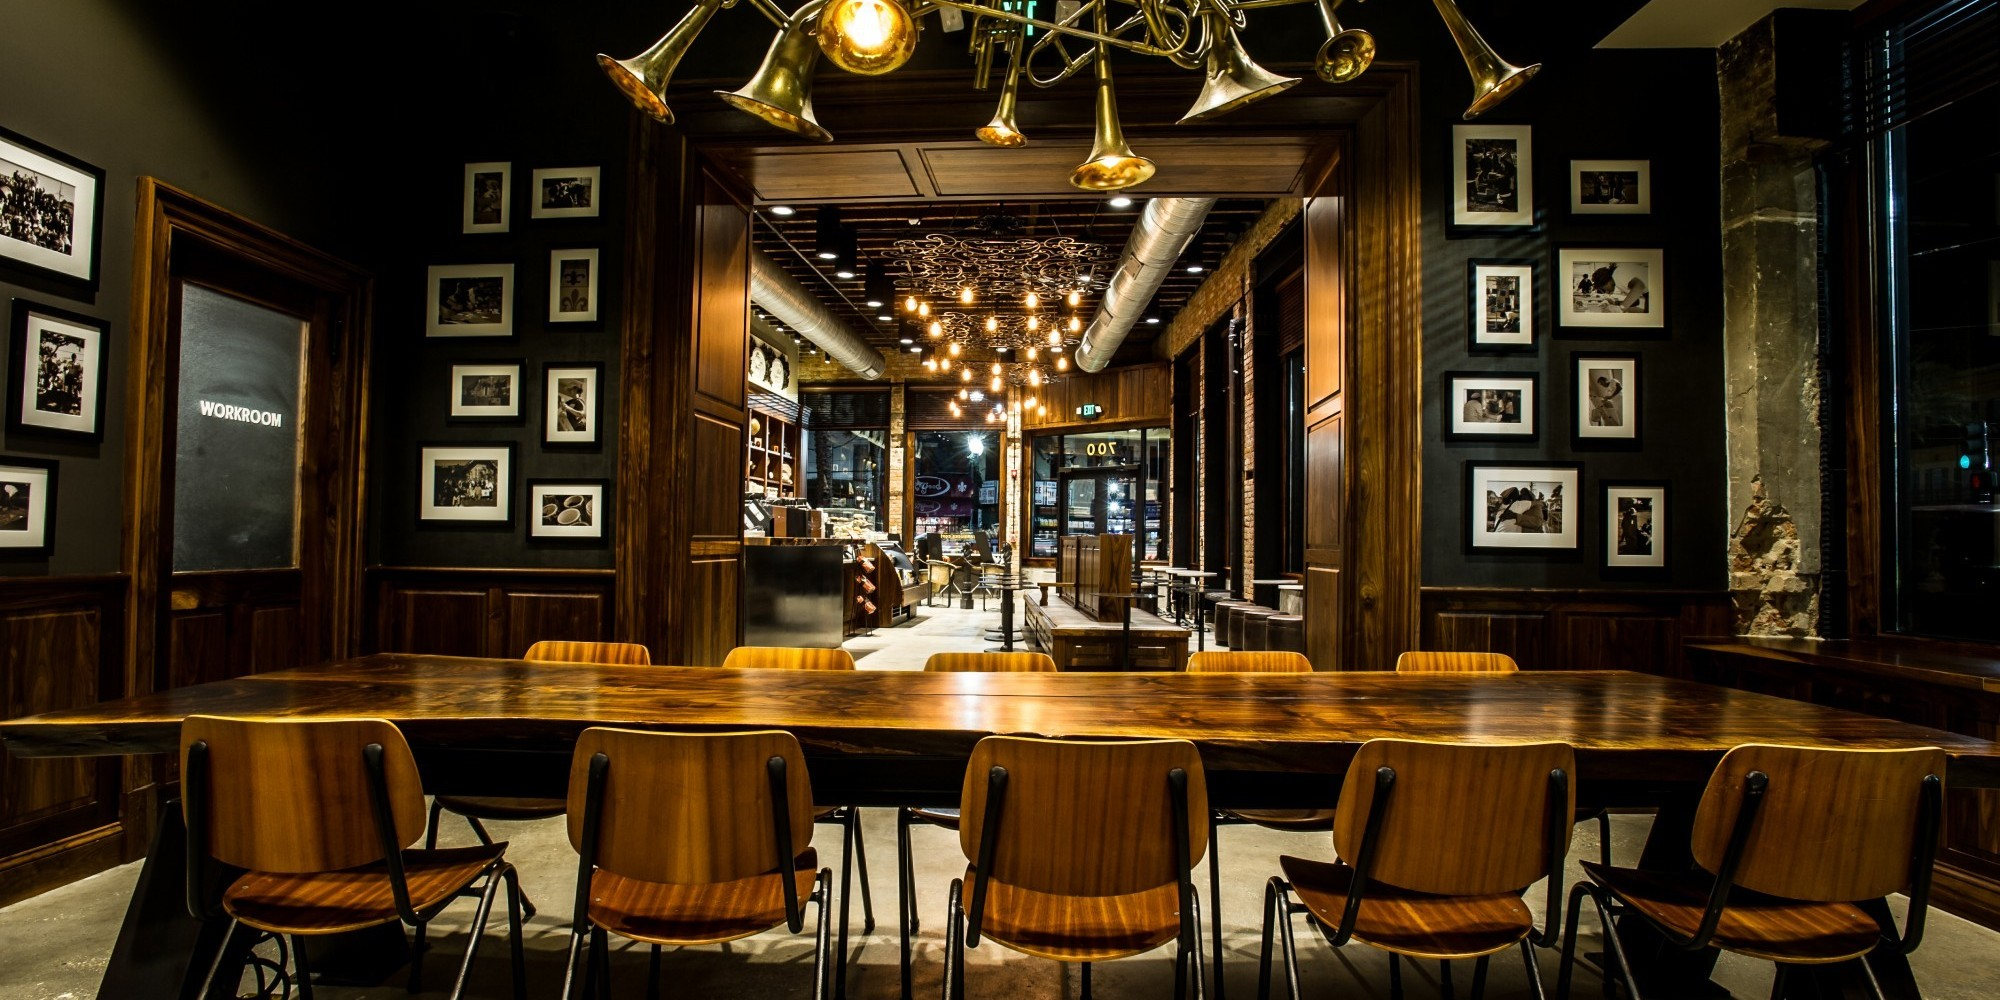 5 Decor Ideas We Want To Steal From Starbucks  For Real PHOTOS  HuffPost